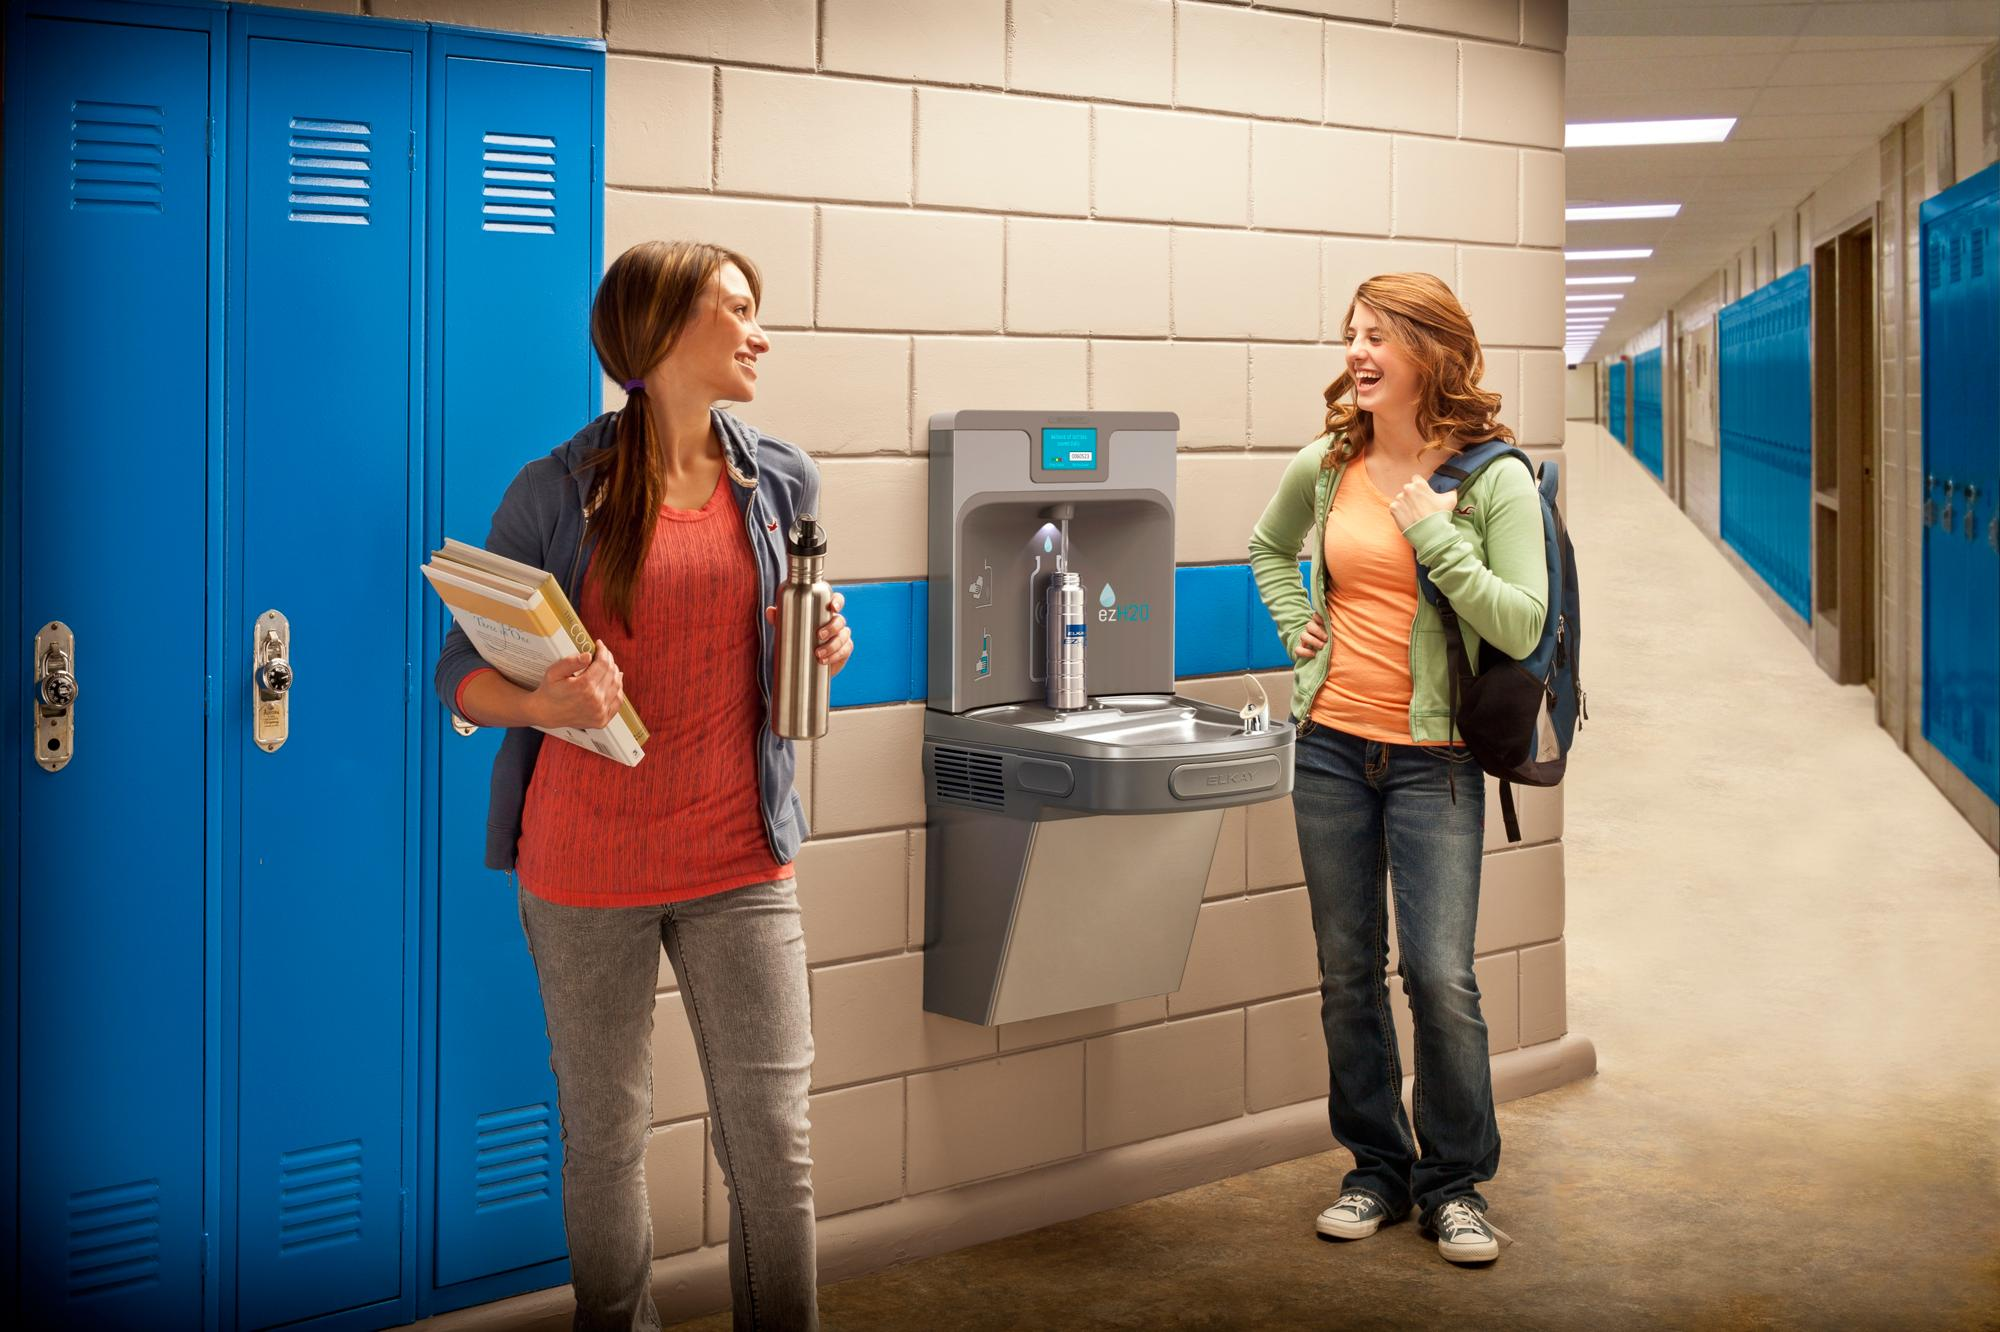 Water fountains schools - Elkay Ezh2o Offers Cleaner Healthier Water